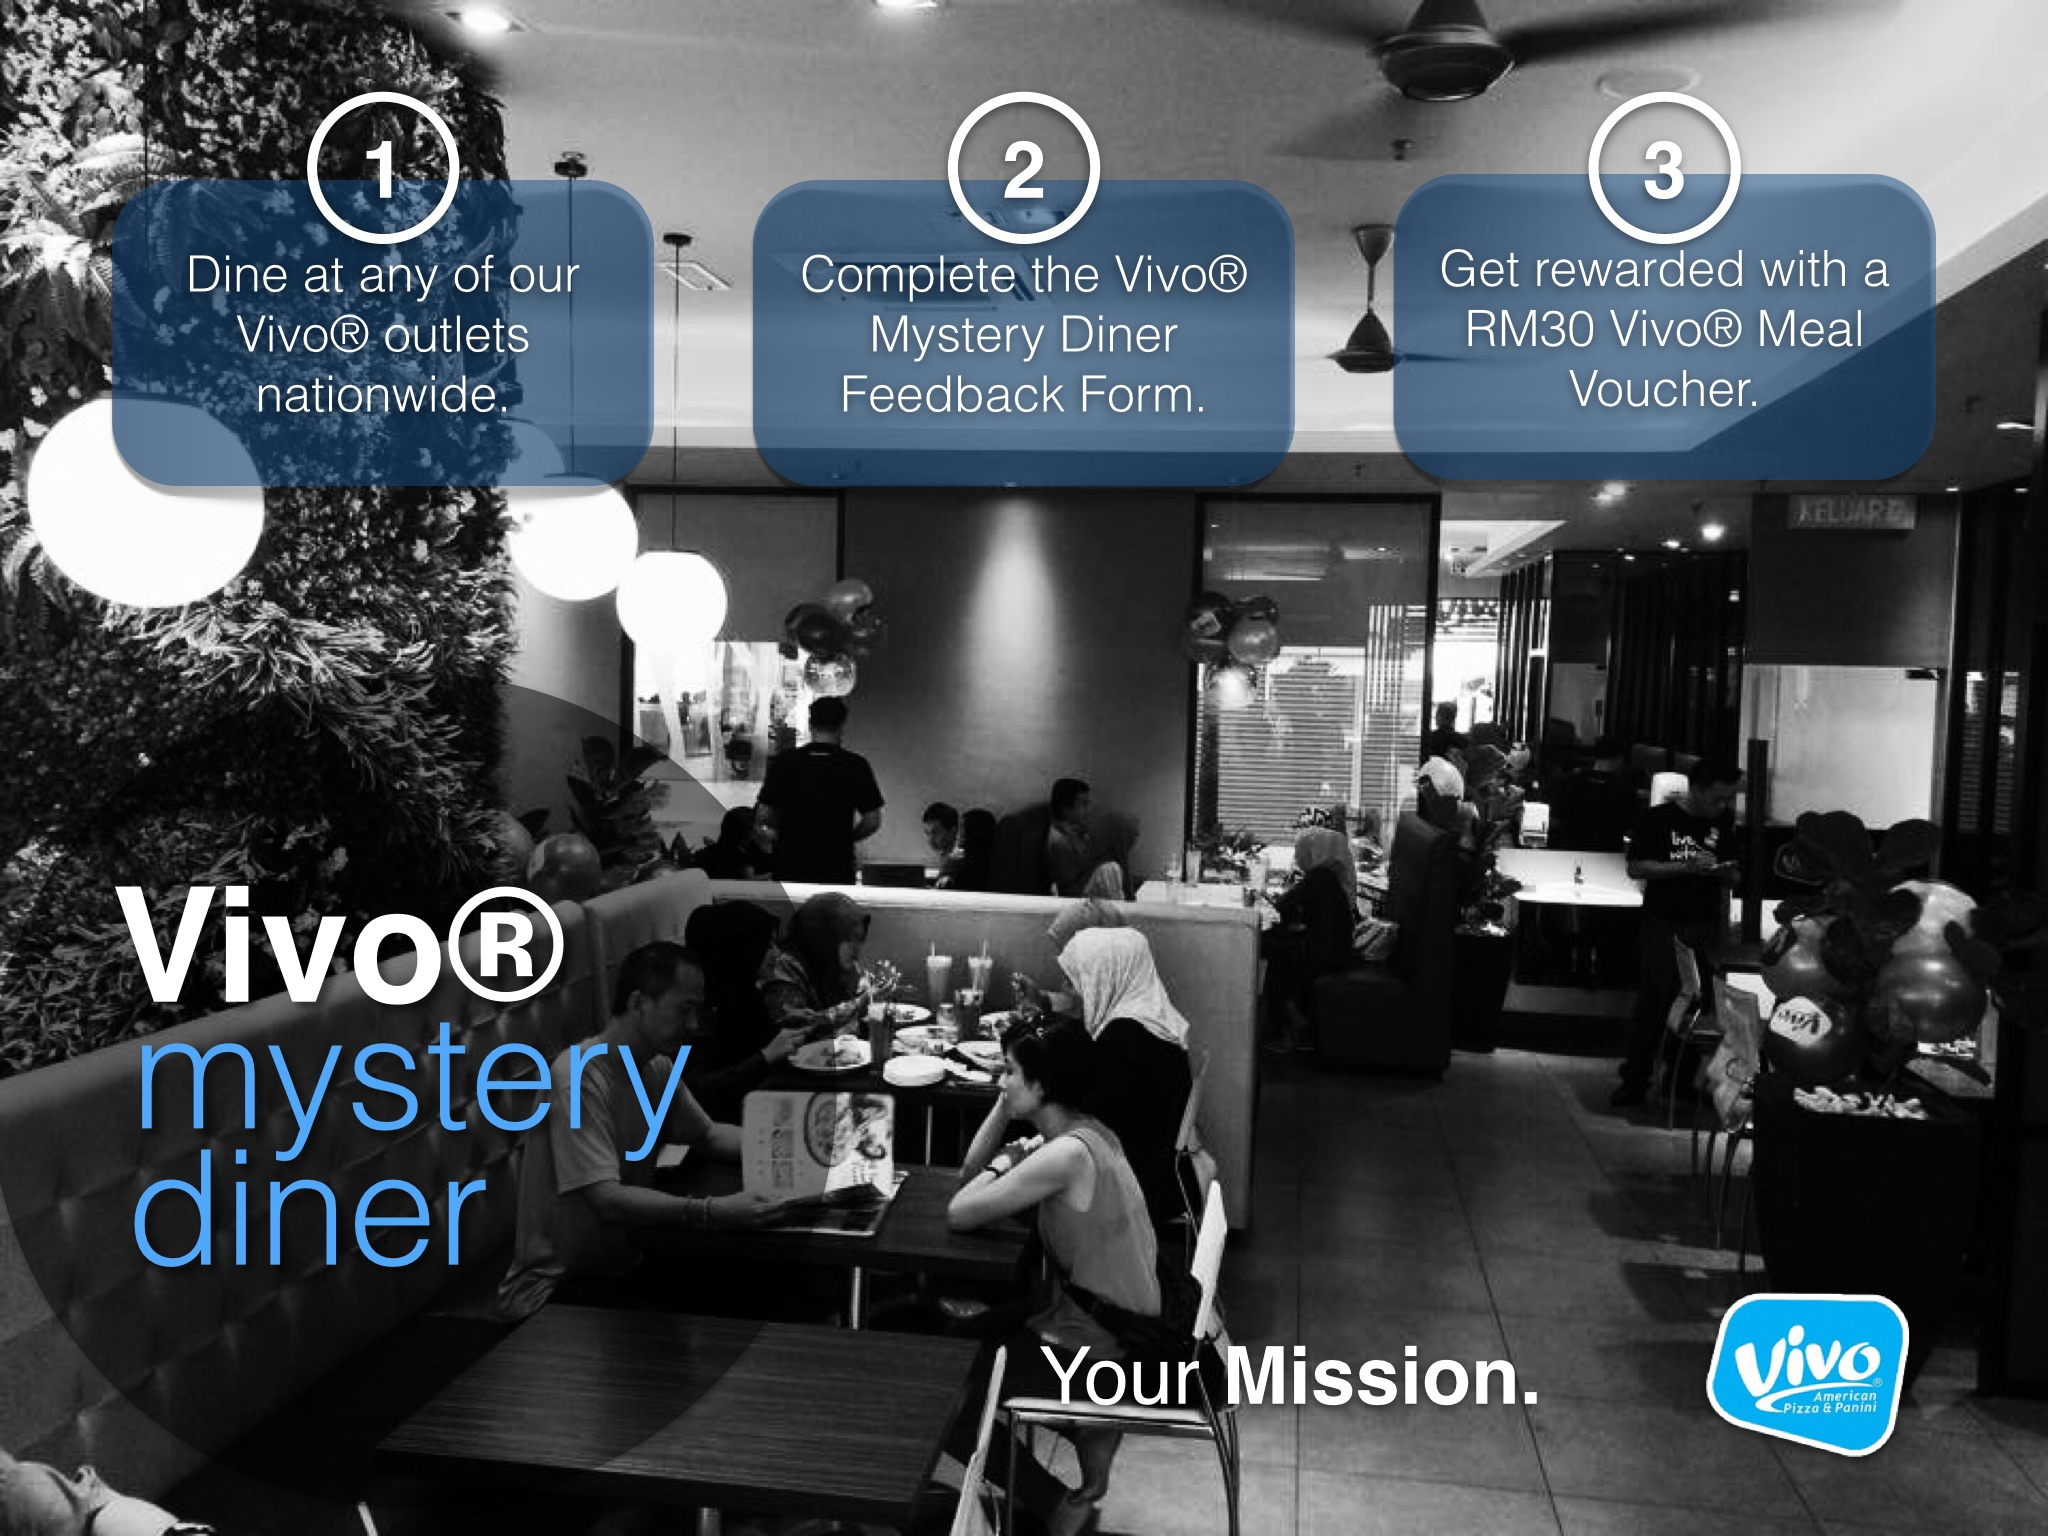 Vivo® Mystery Diner - The Mission